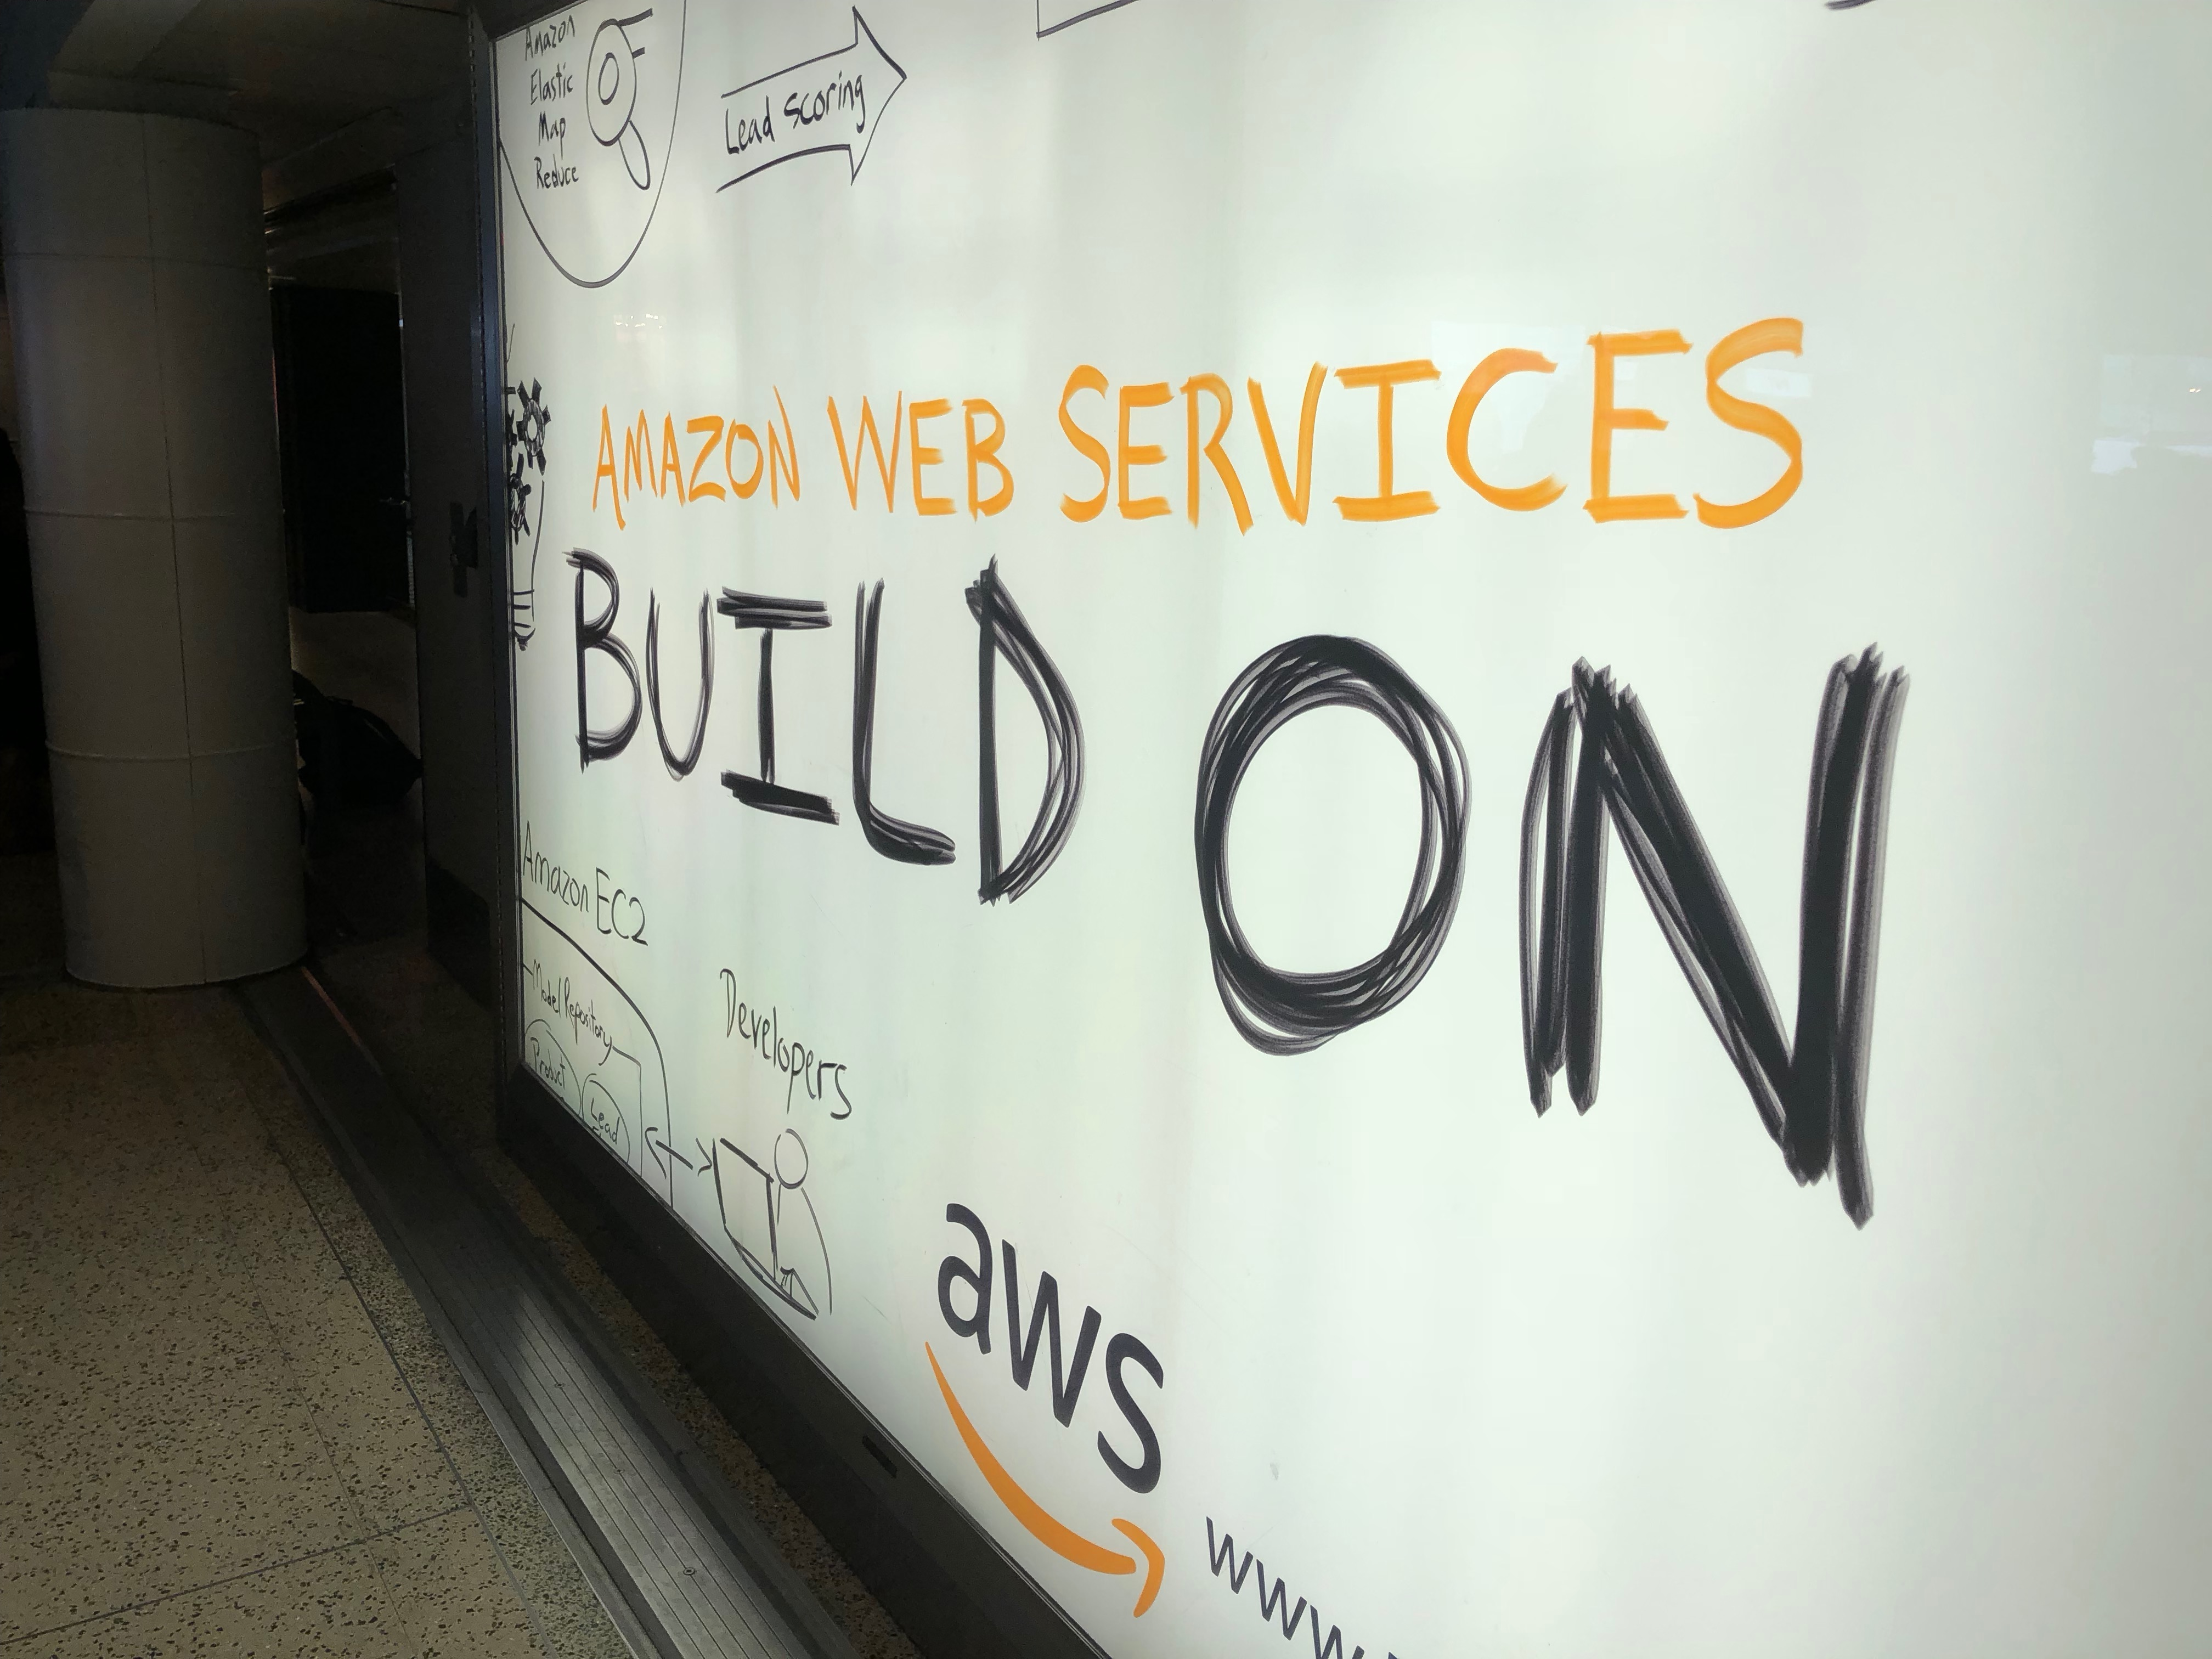 Report: Amazon Web Services cuts deals with SAP, Symantec valued at a combined $1B